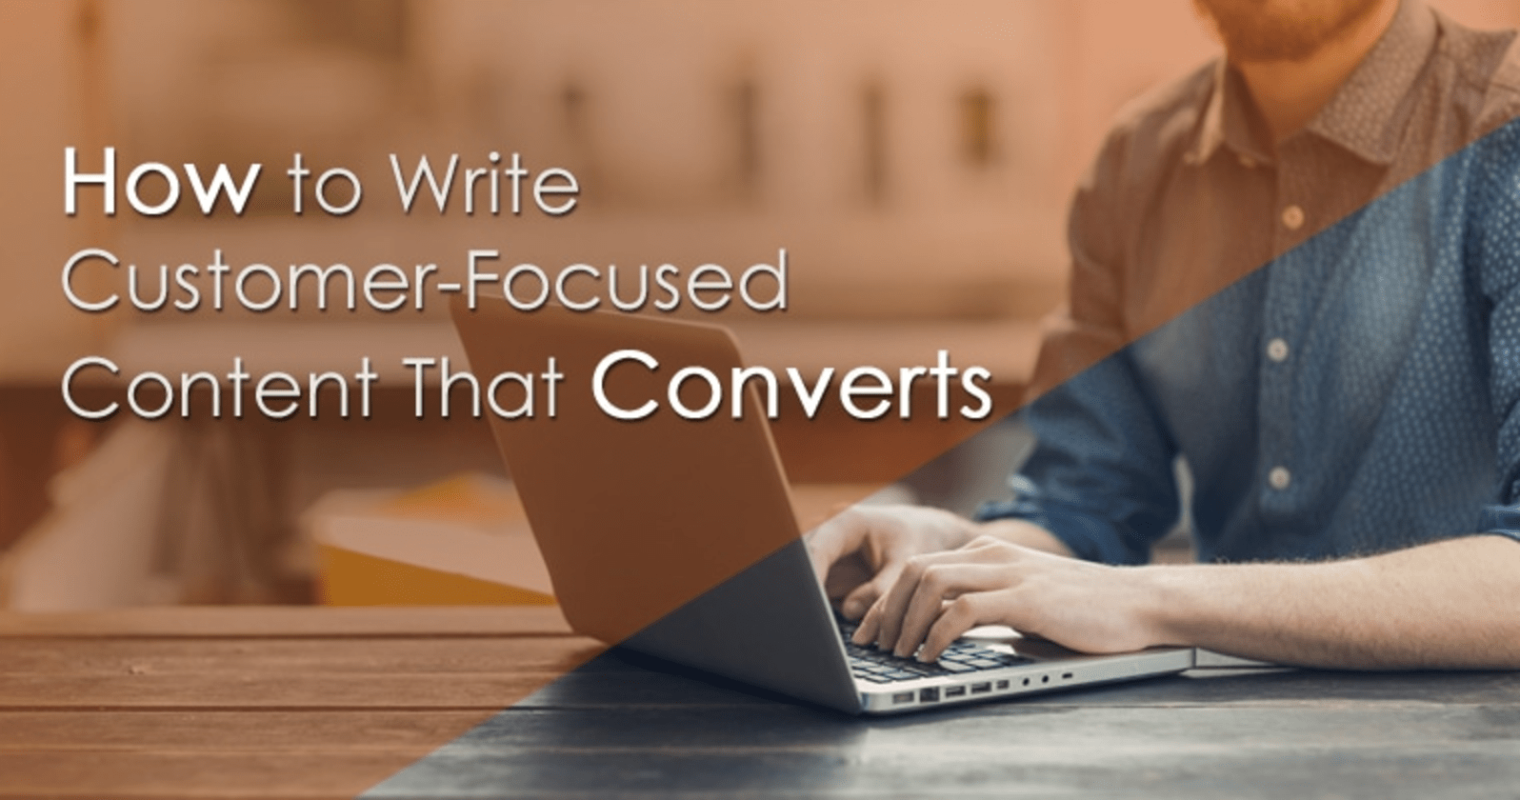 How to Write Customer-Focused Content That Converts